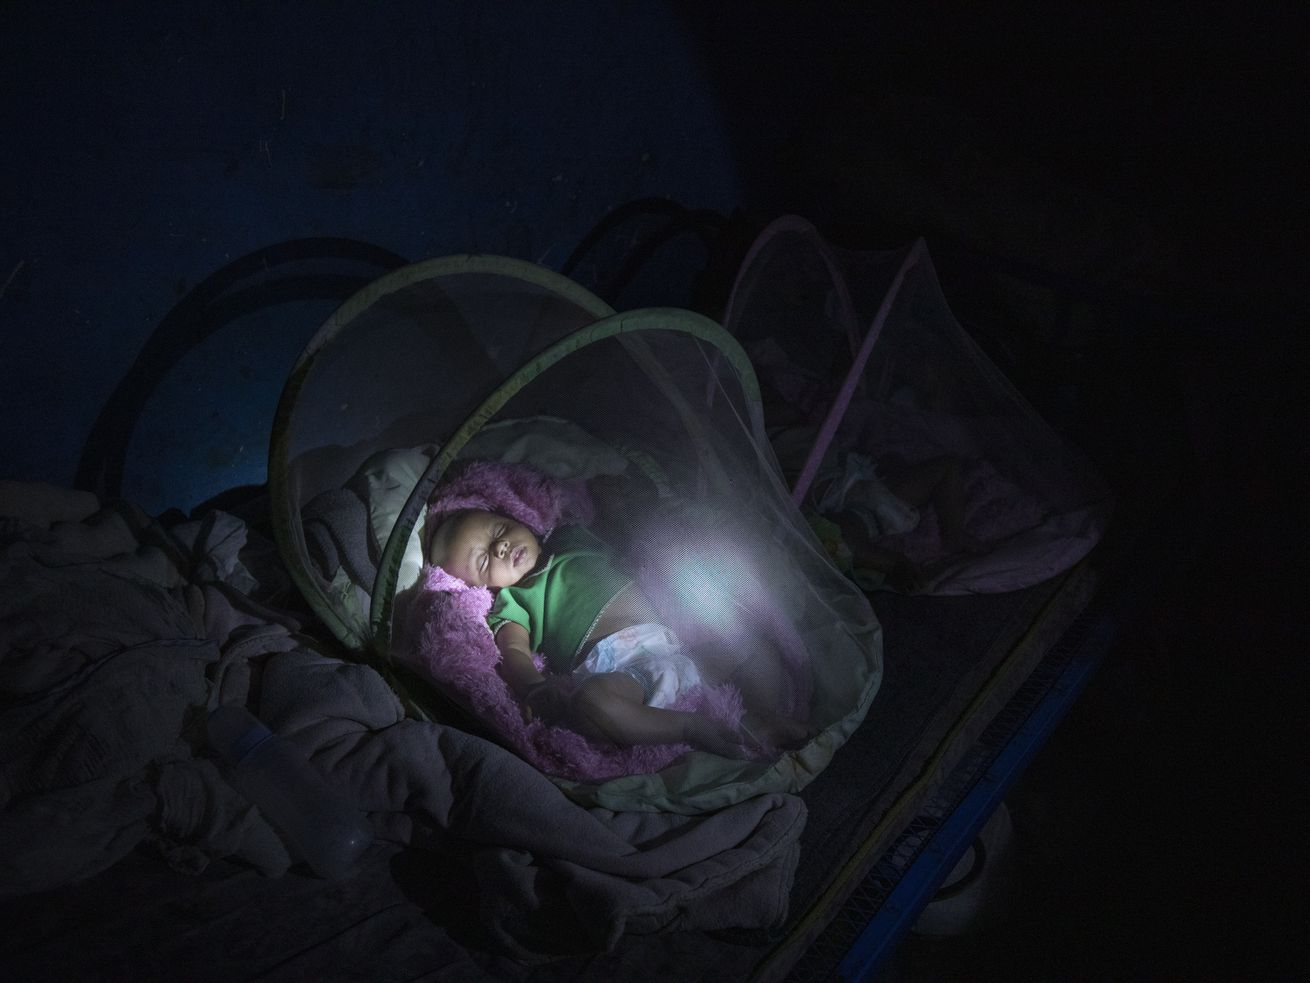 Tigrayan refugee Abraha Kinfe Gebremariam, 40, uses a flashlight to check on his 4-month-old twin daughters Aden and Turfu after praying at a church early in the morning in Hamdayet in eastern Sudan, near the border with Ethiopia. Even as Tigrayans ran for their lives or jostled for space on a boat to safety, the sight of the tall, silent, sorrowful man carrying the tiny twin girls made people pause.